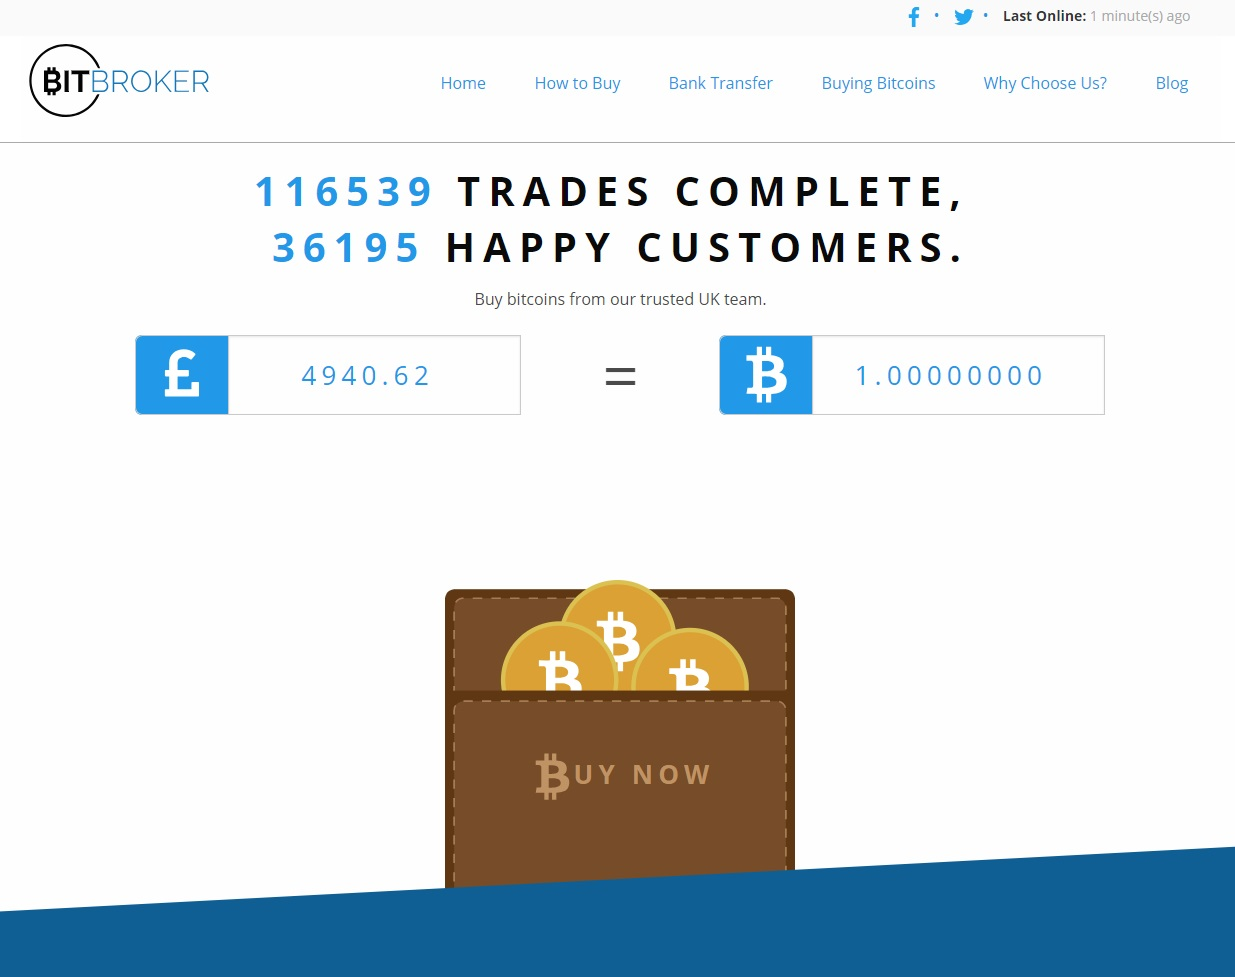 bitbroker.co.uk